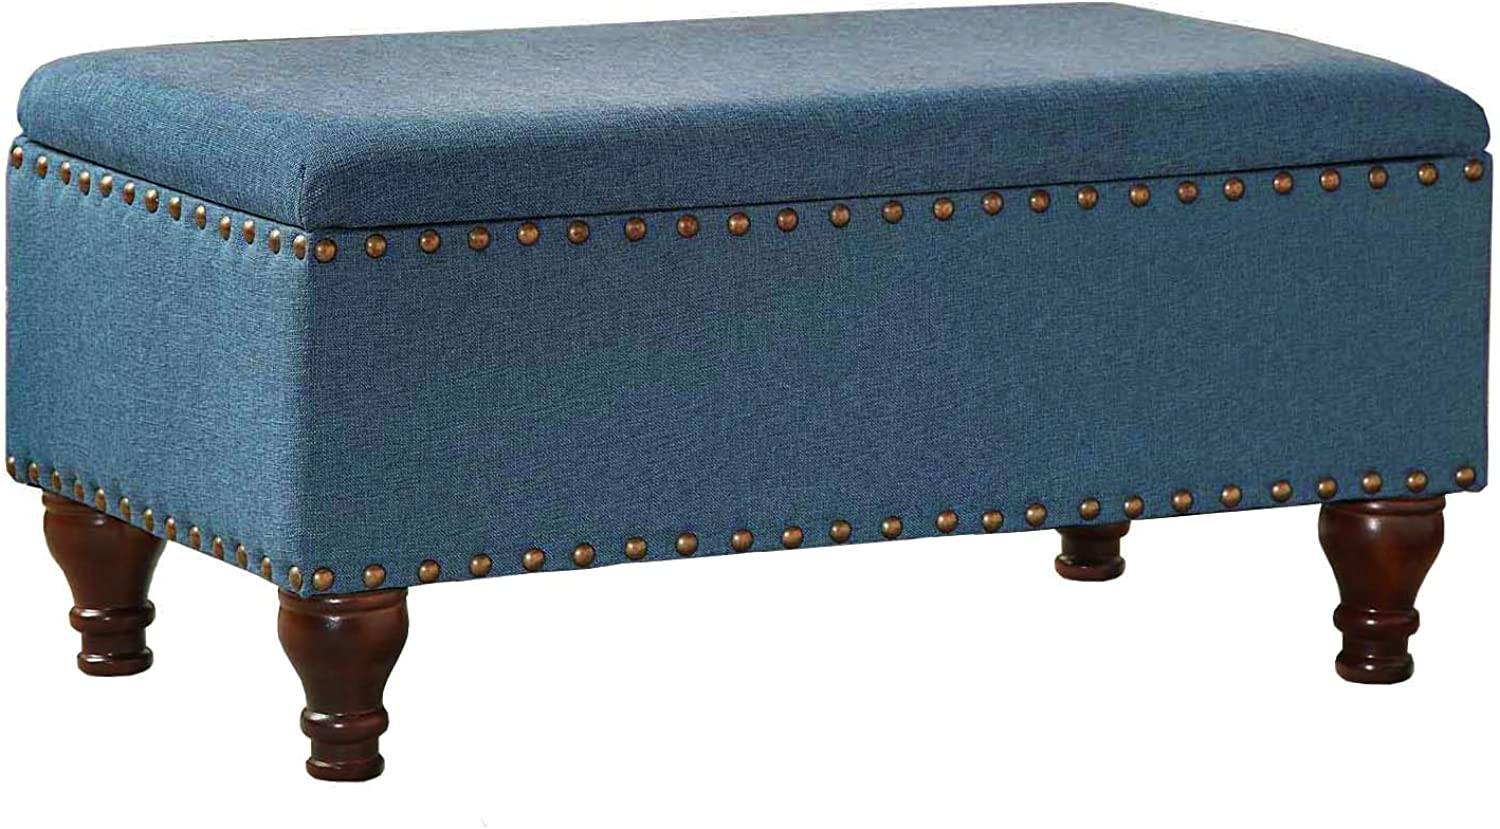 Kinfine Linen Storage Bench with Nailhead Trim and Hinged Lid, bluee